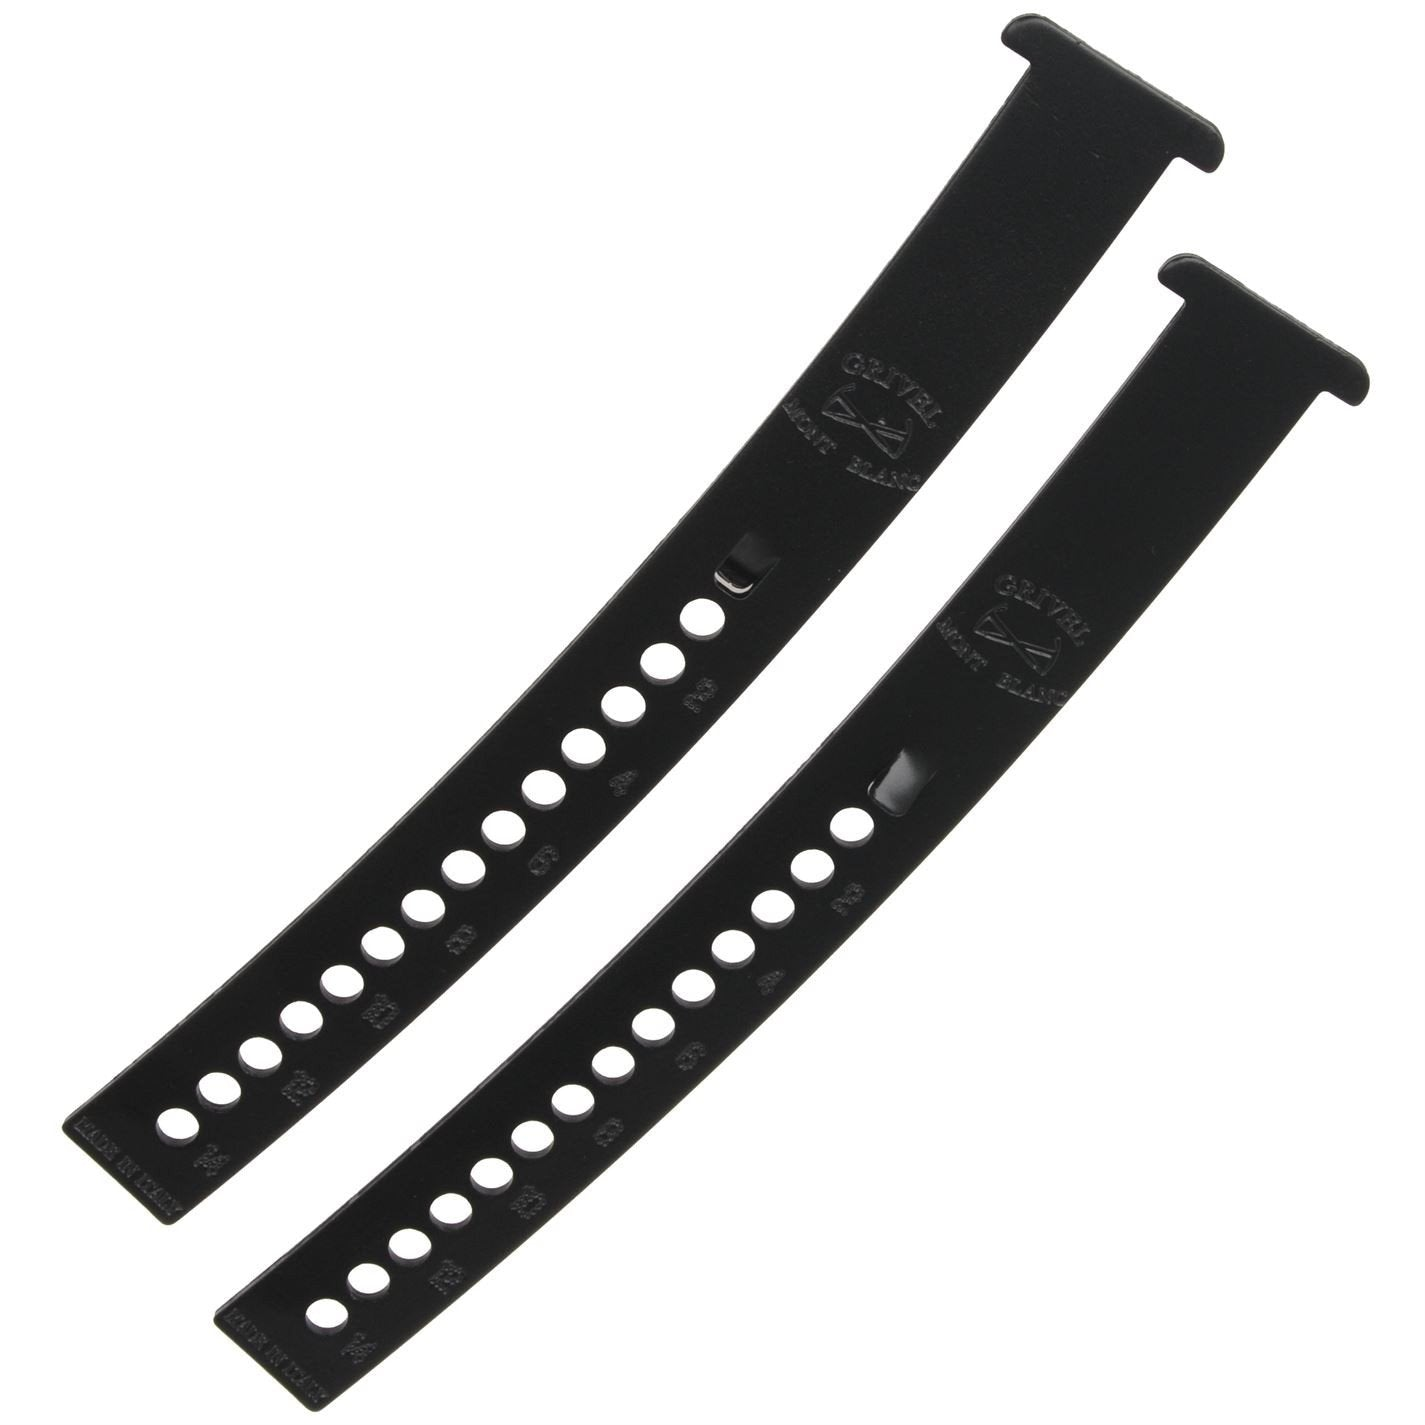 Grivel Long Extension Bar, pair shown side by side, in black colour.